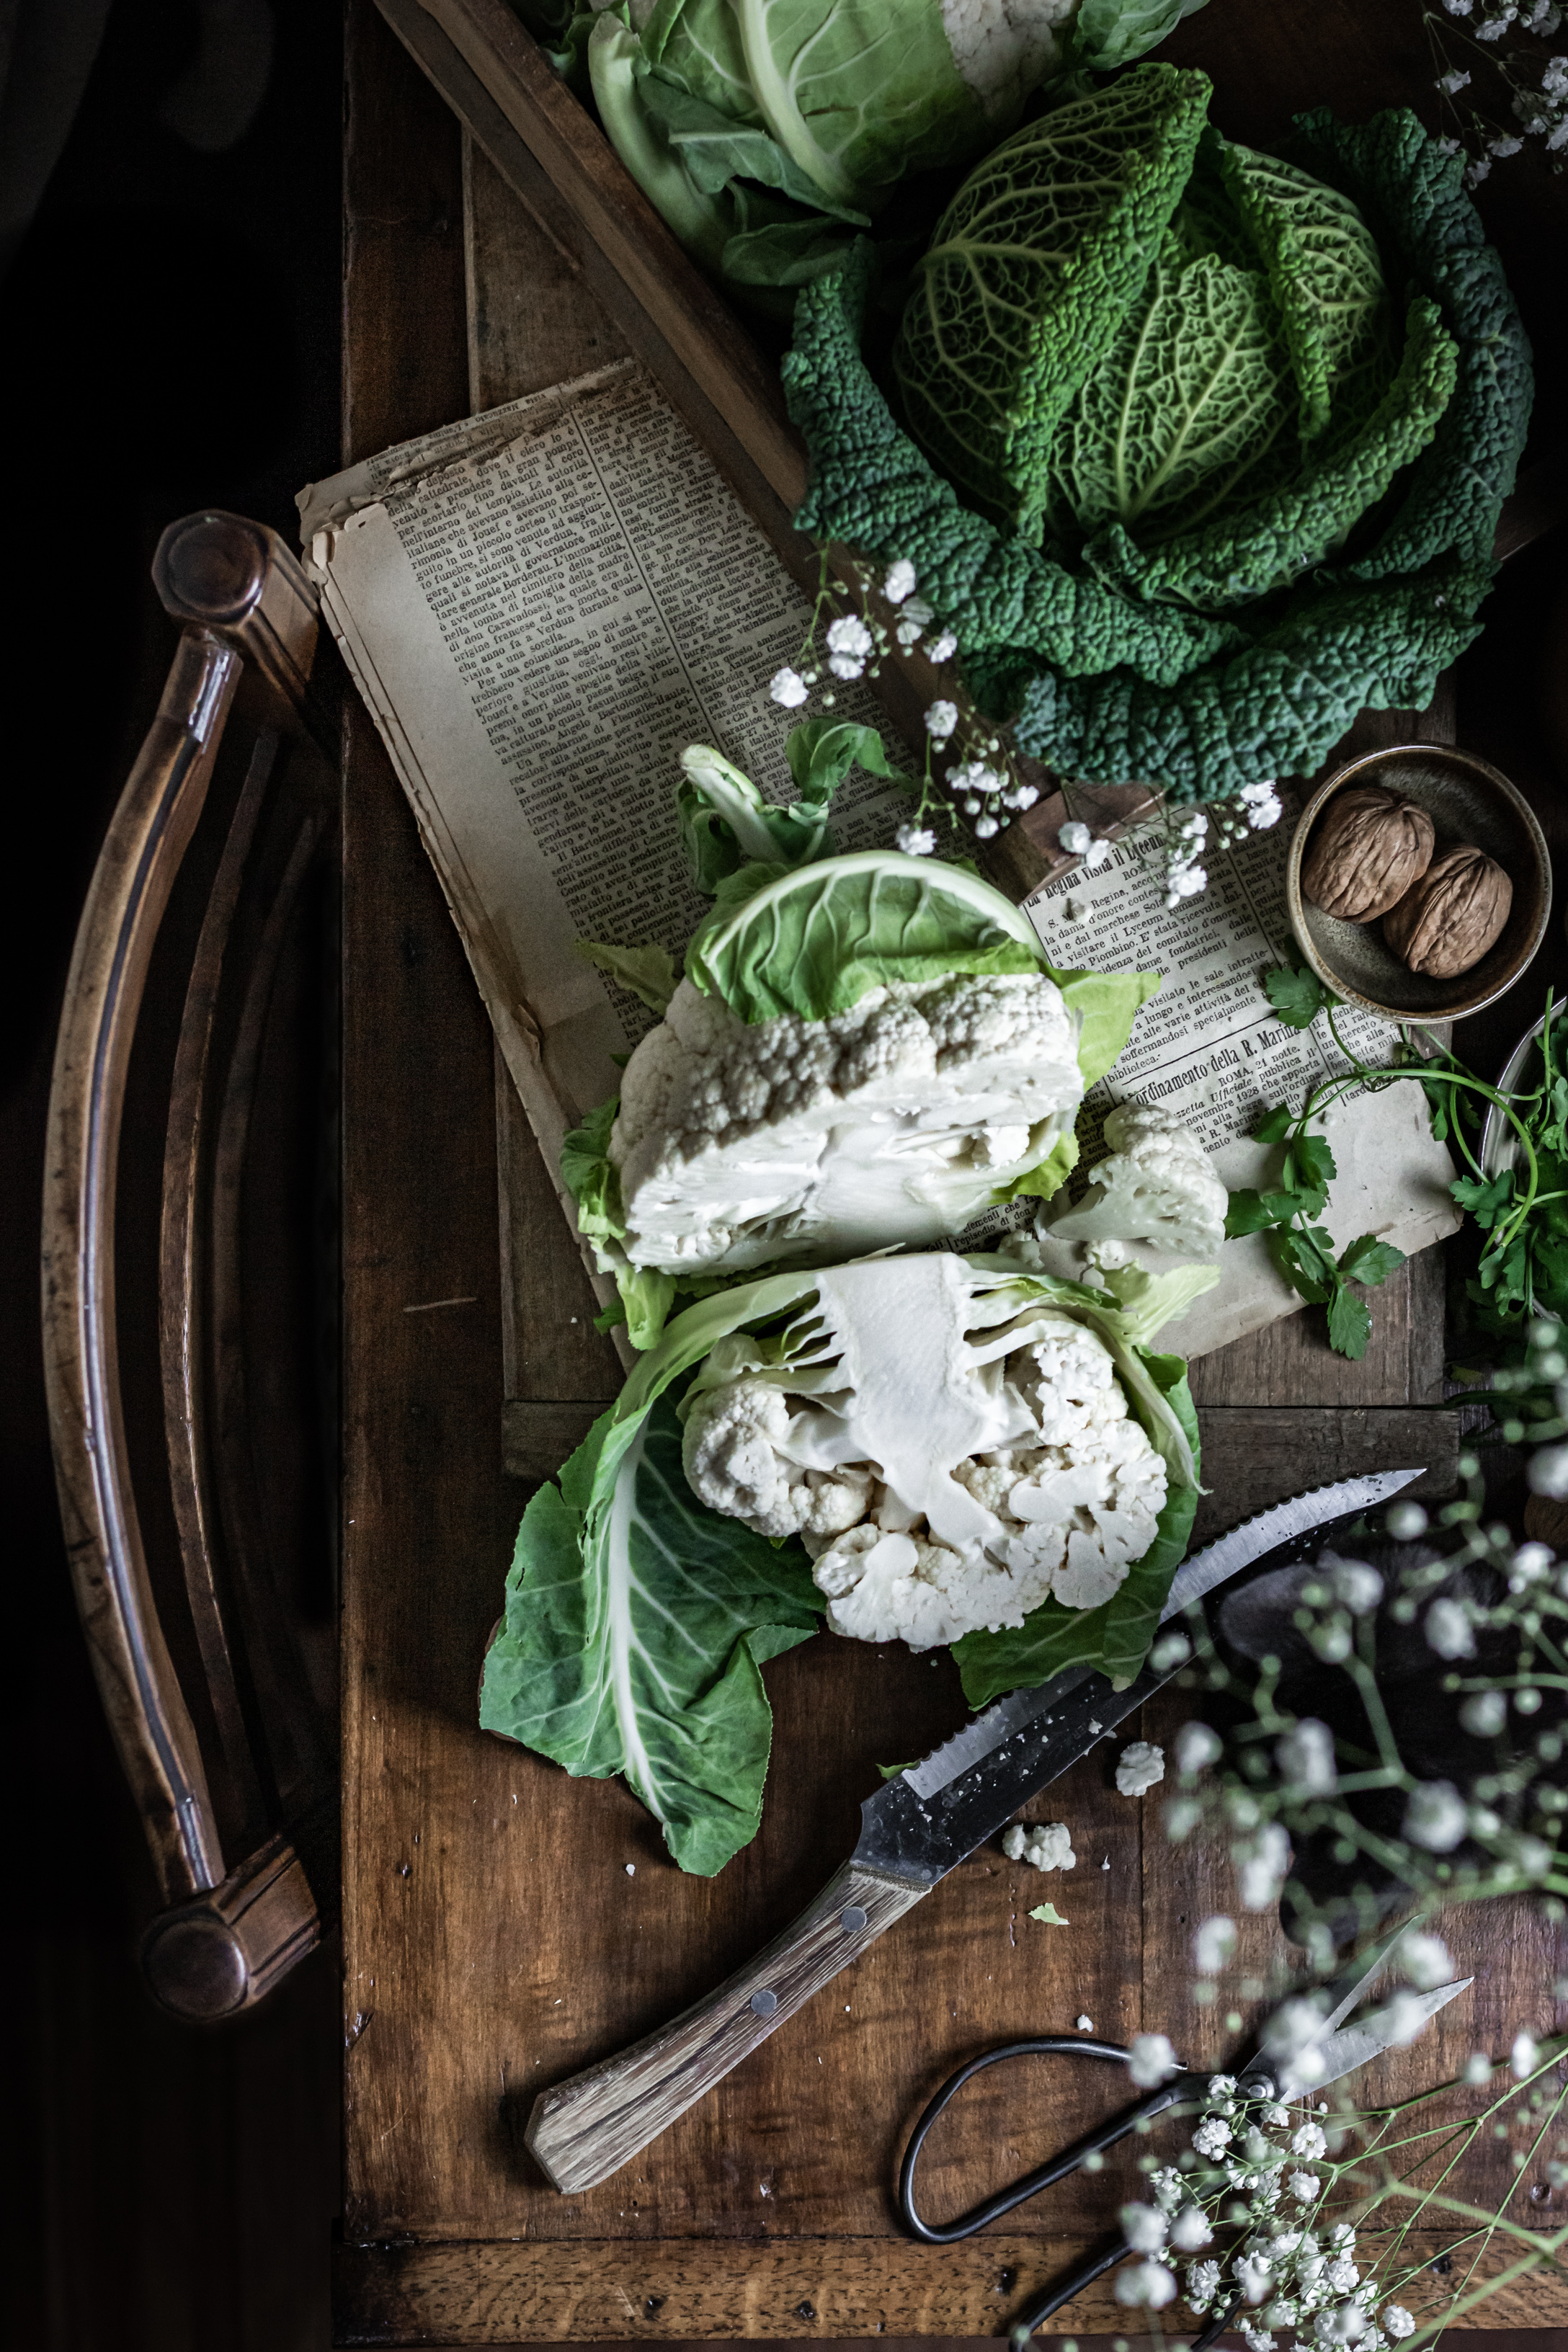 Food photography Lucia Marecak | Healthy Goodies by Lucia-9369